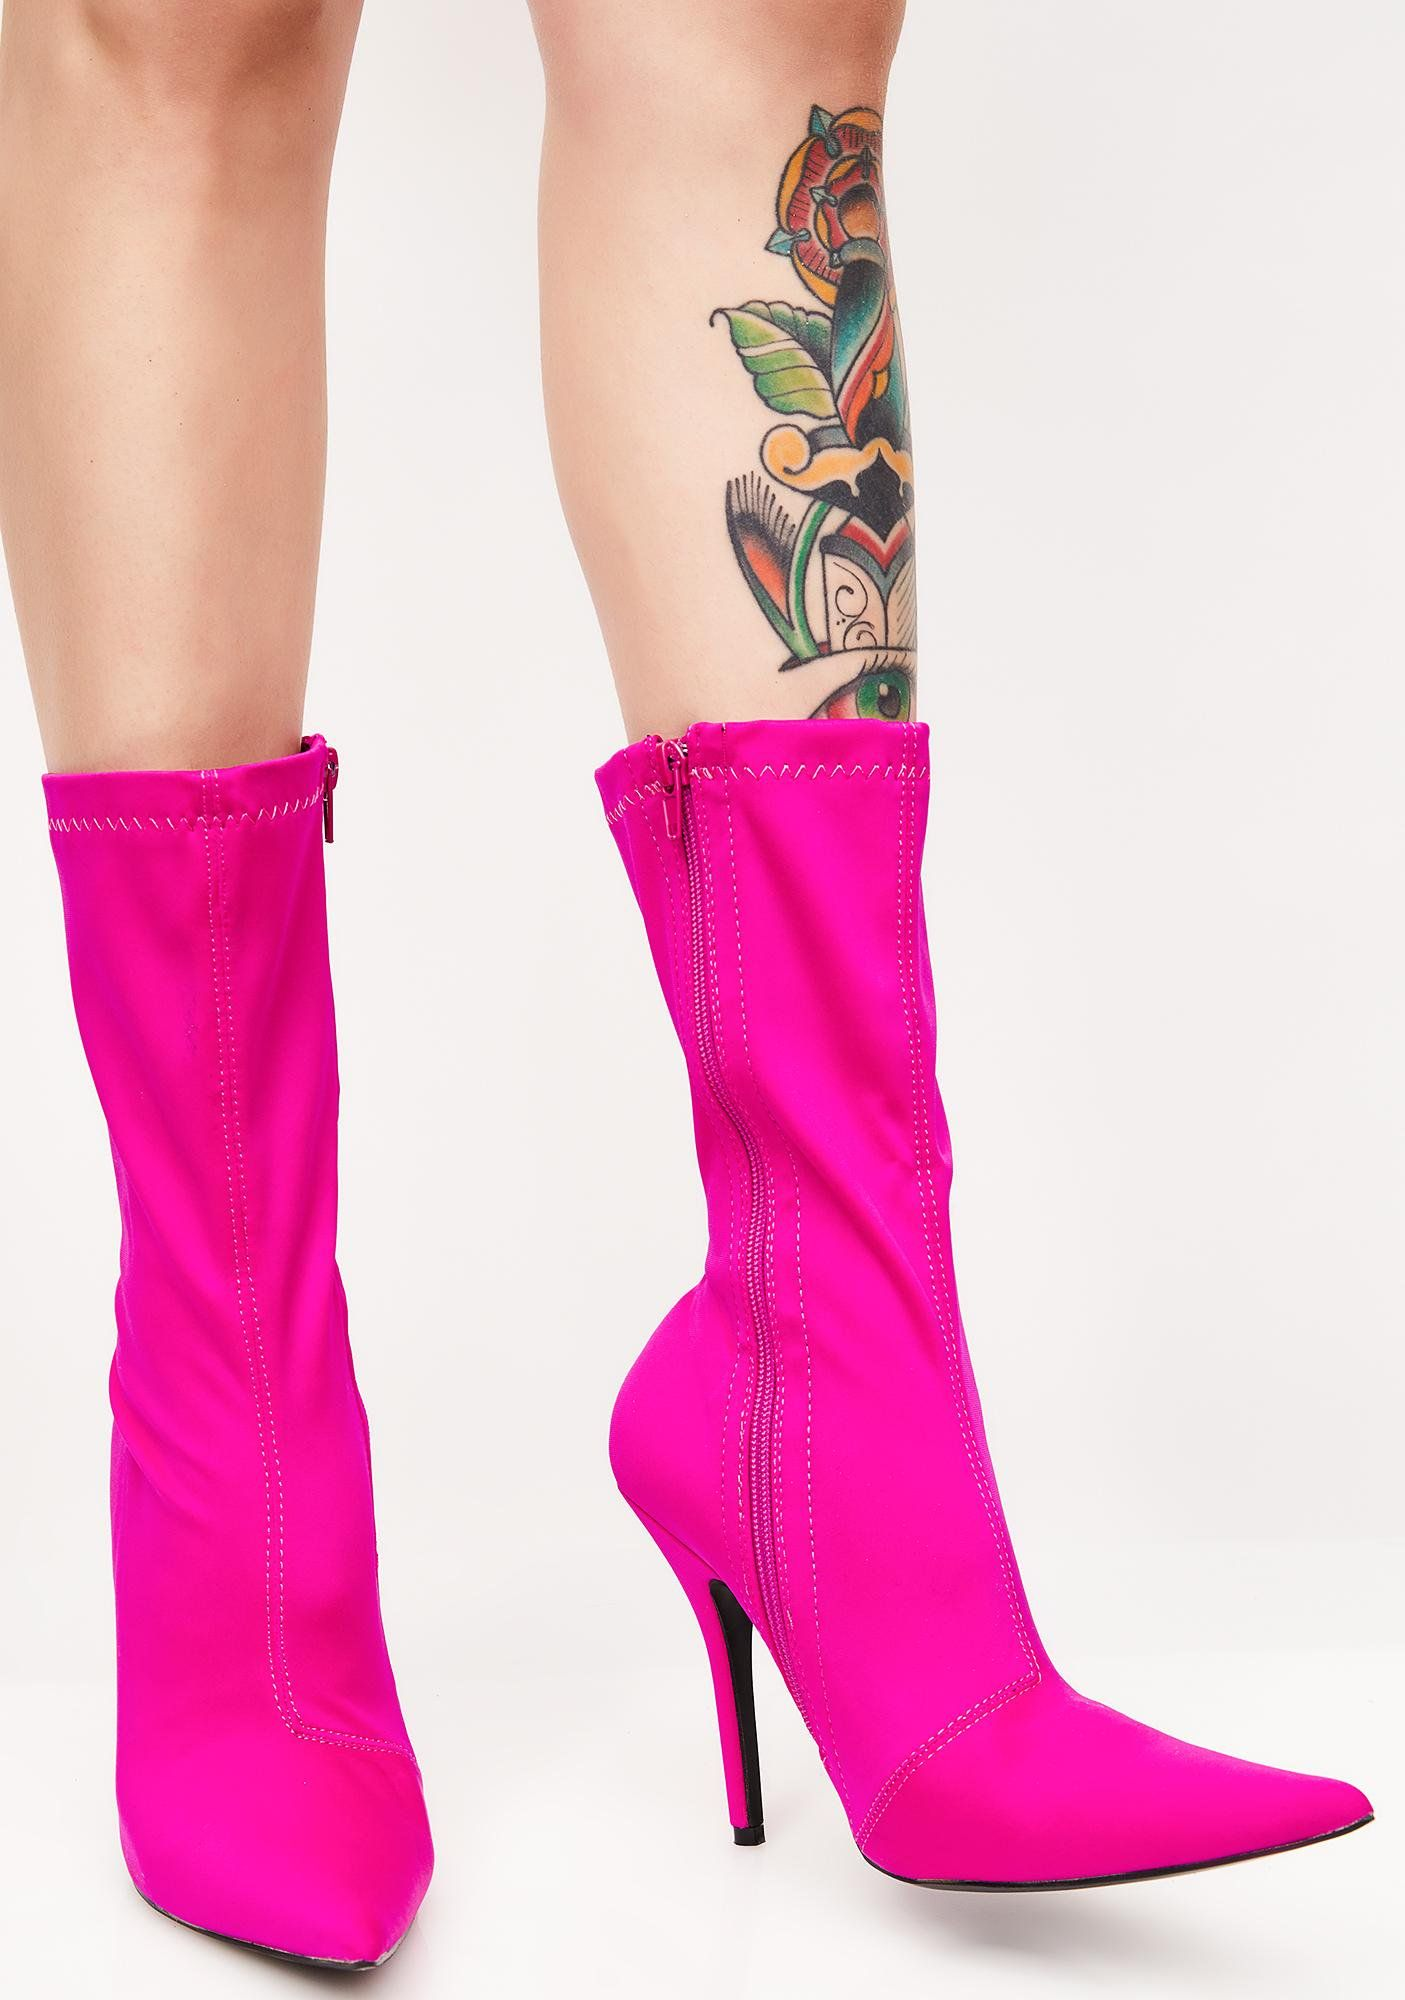 bf6b3dfb6ed7 Public Desire Danger Sock Fit Ankle Boots cuz you take it to the edge. These